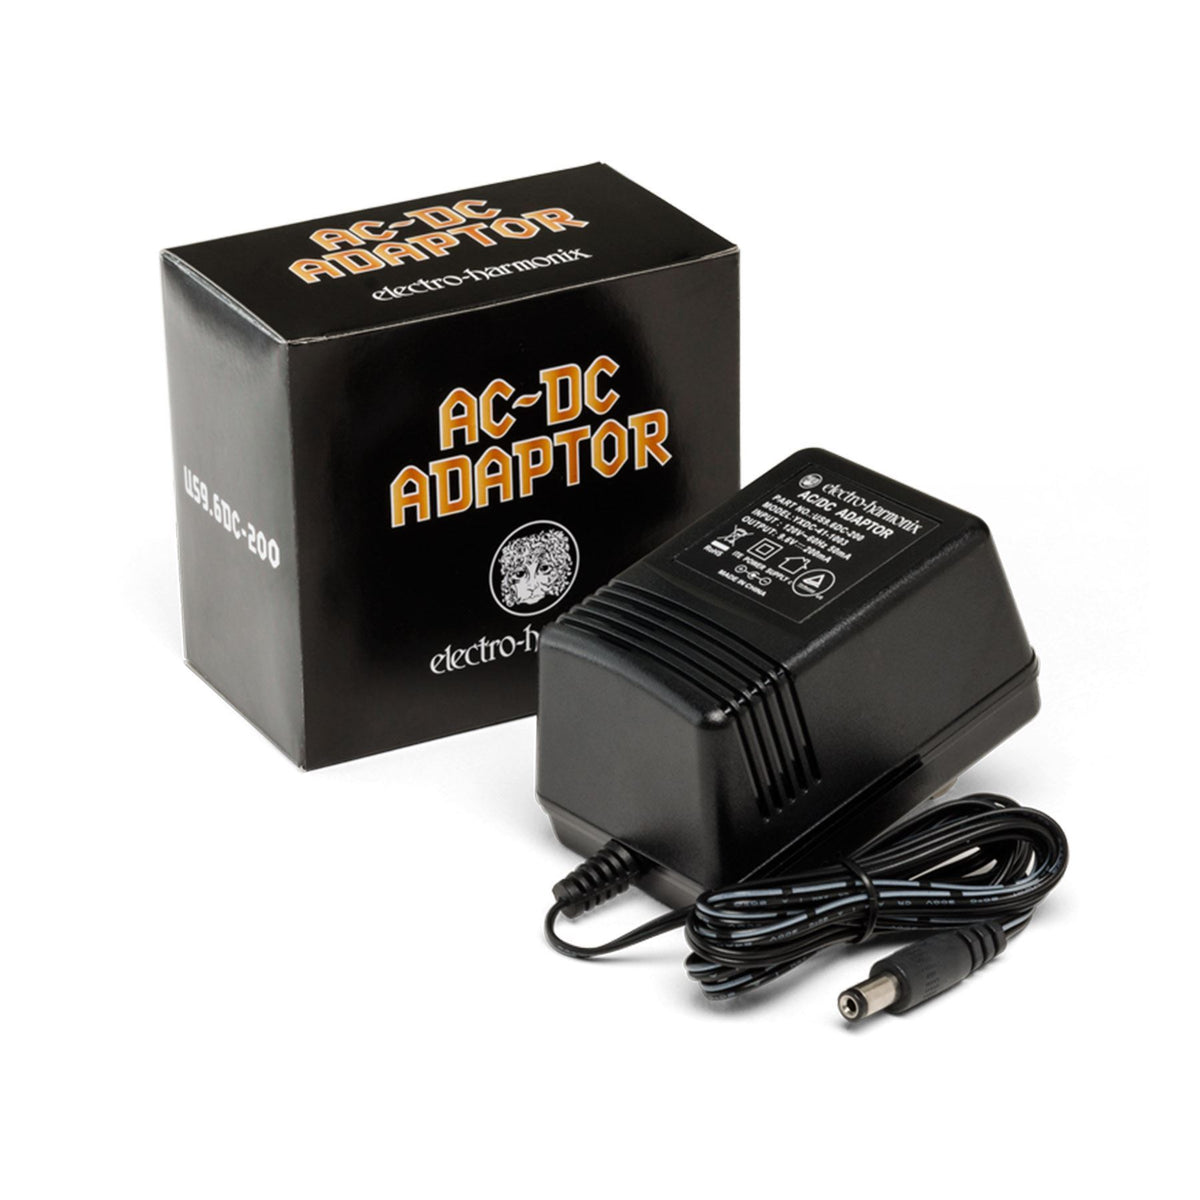 Electro-Harmonix 9.6V AC-DC Power Supply for RIDDLE Guitar Effects Pedals